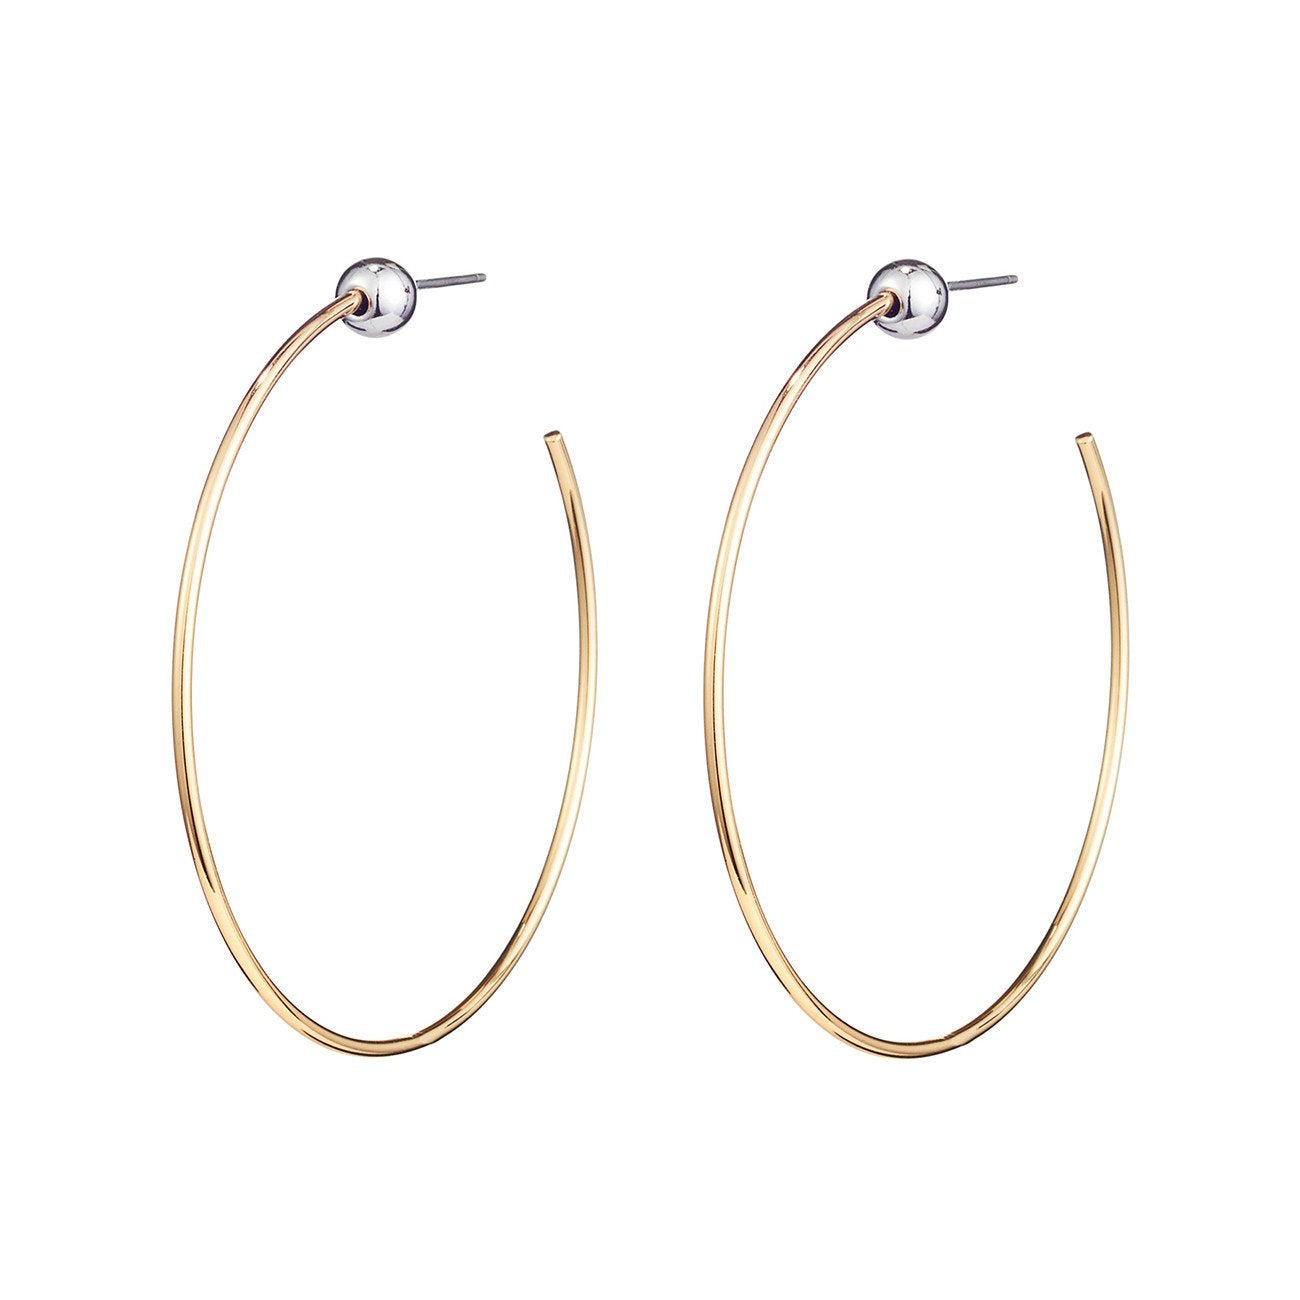 JENNY BIRD - ICON HOOPS S IN GOLD/RHODIUM